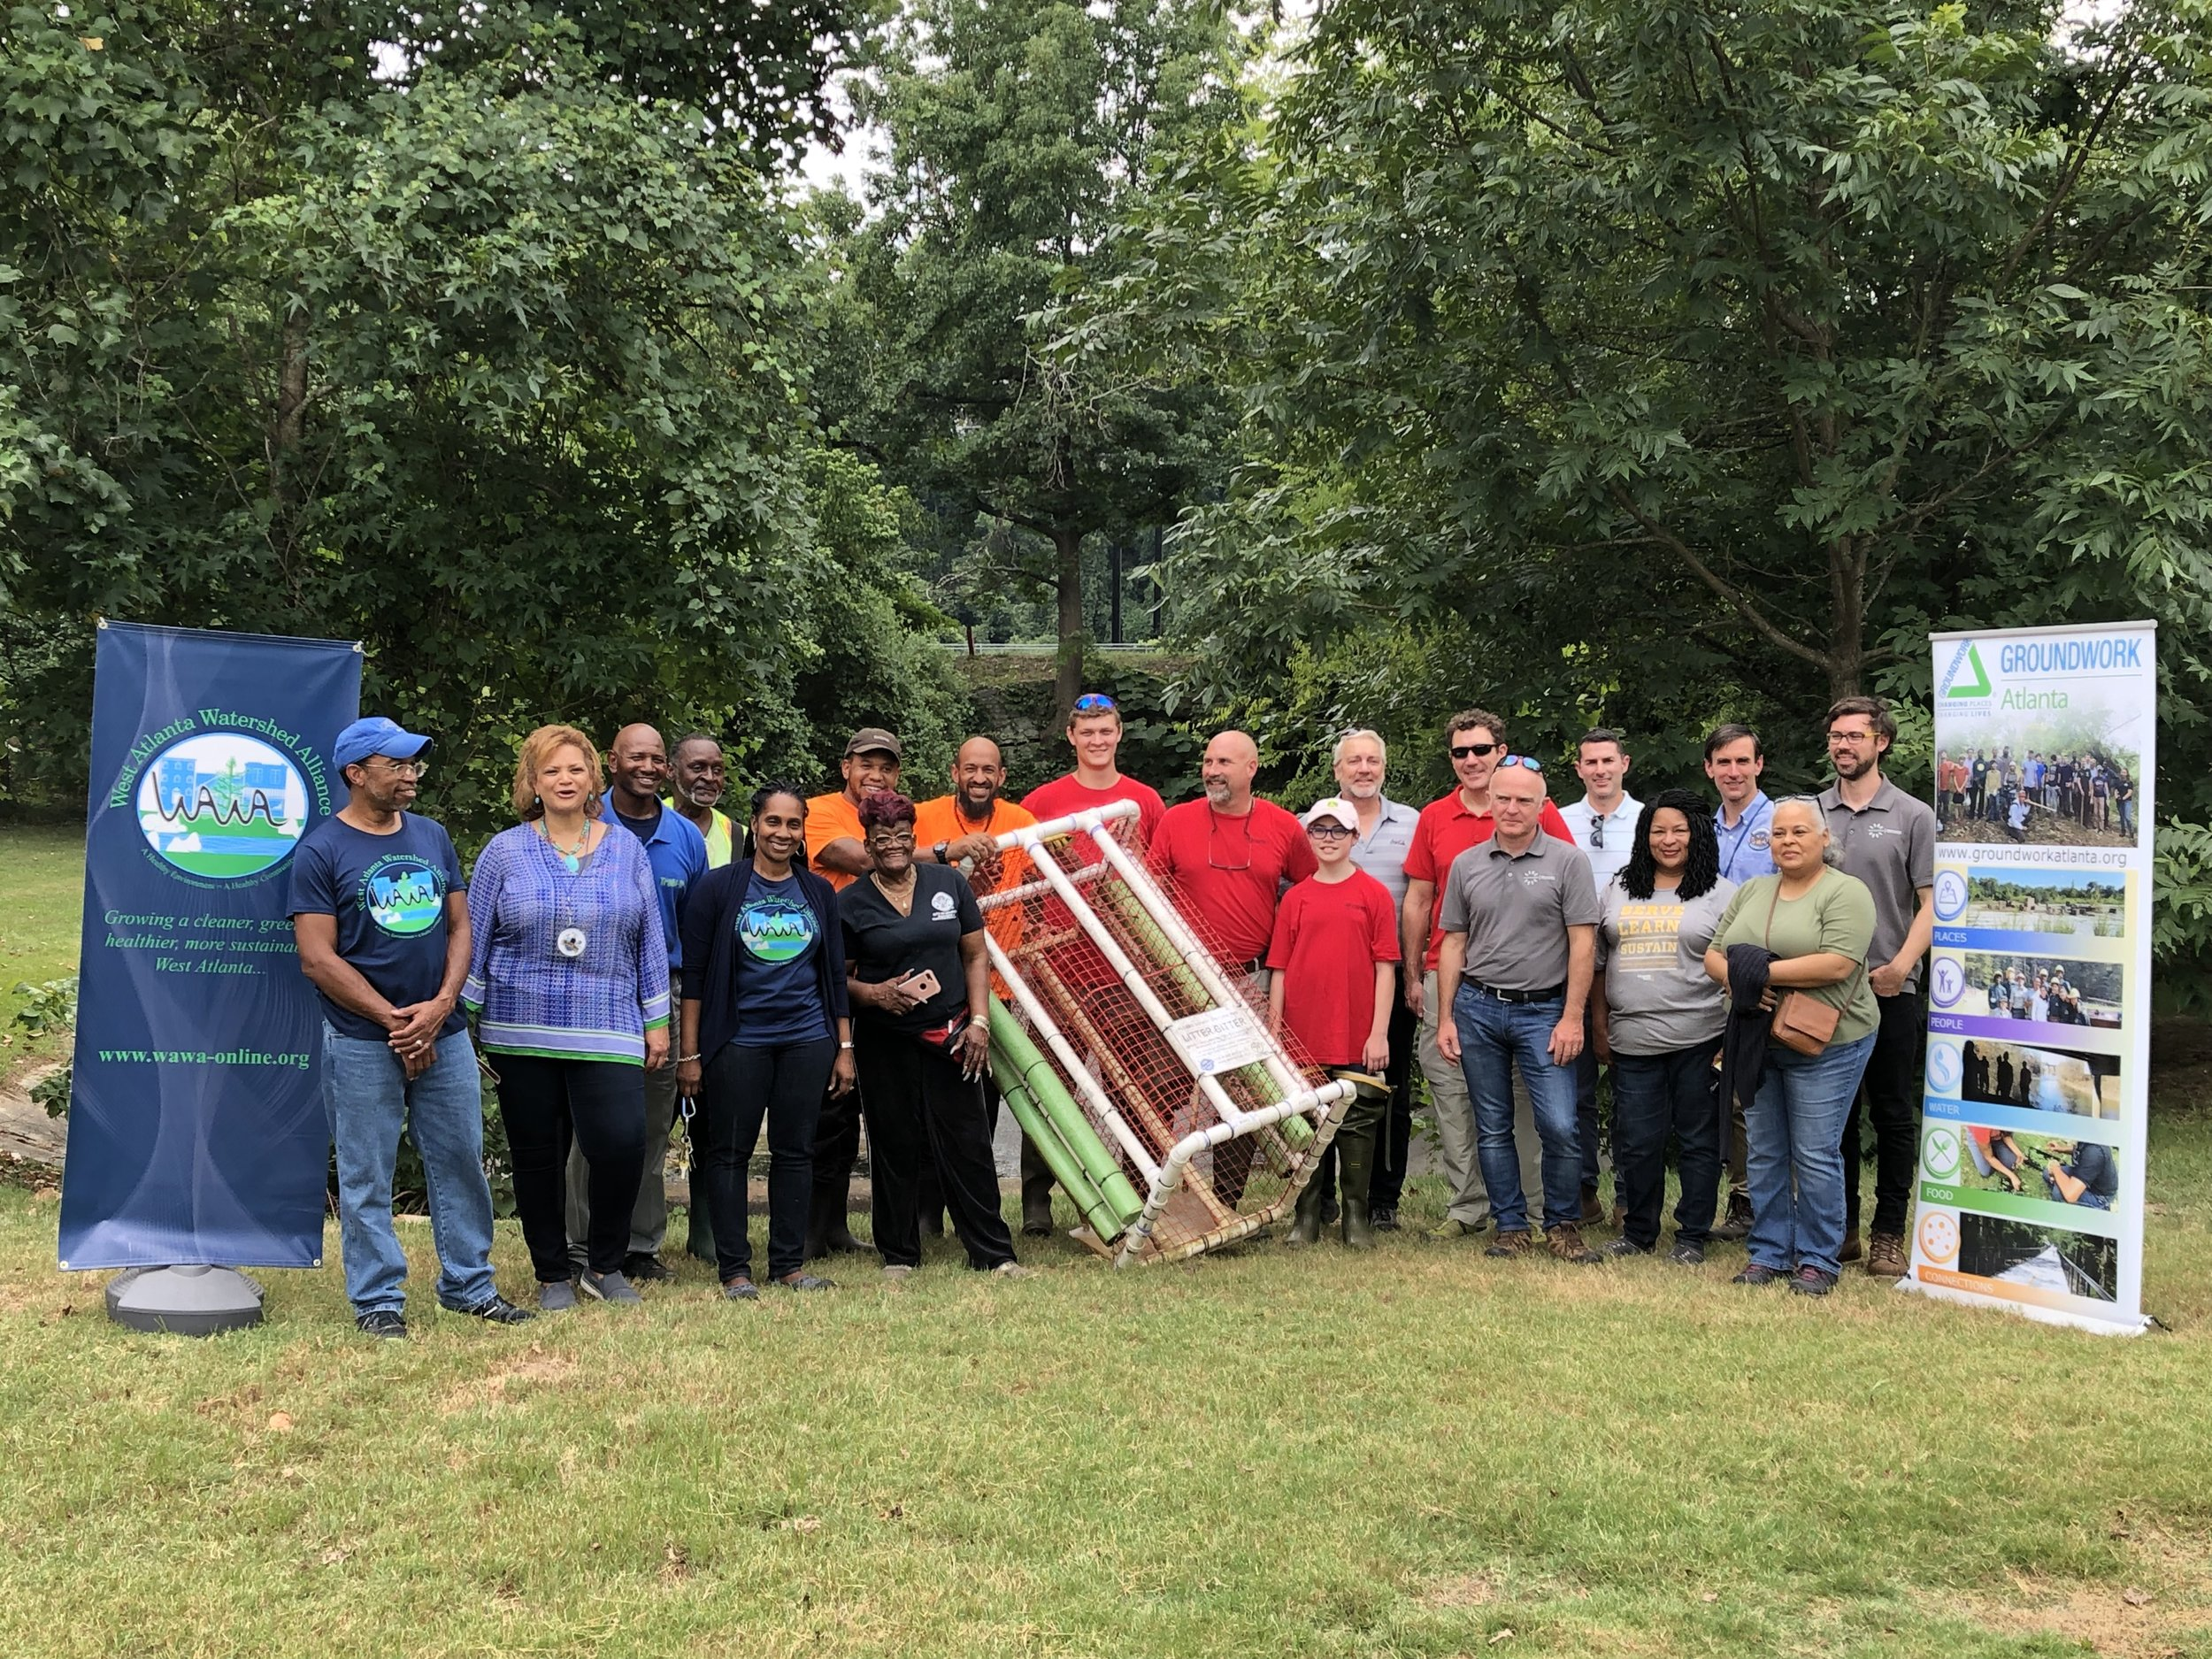 """Installation of Osprey Initiative, LLC """"Litter Gitter"""" technology in Westside Atlanta with project team and stakeholders.  """"Litter Gitter"""" is a small stream litter collection device used to intercept floating litter from stormwater runoff."""